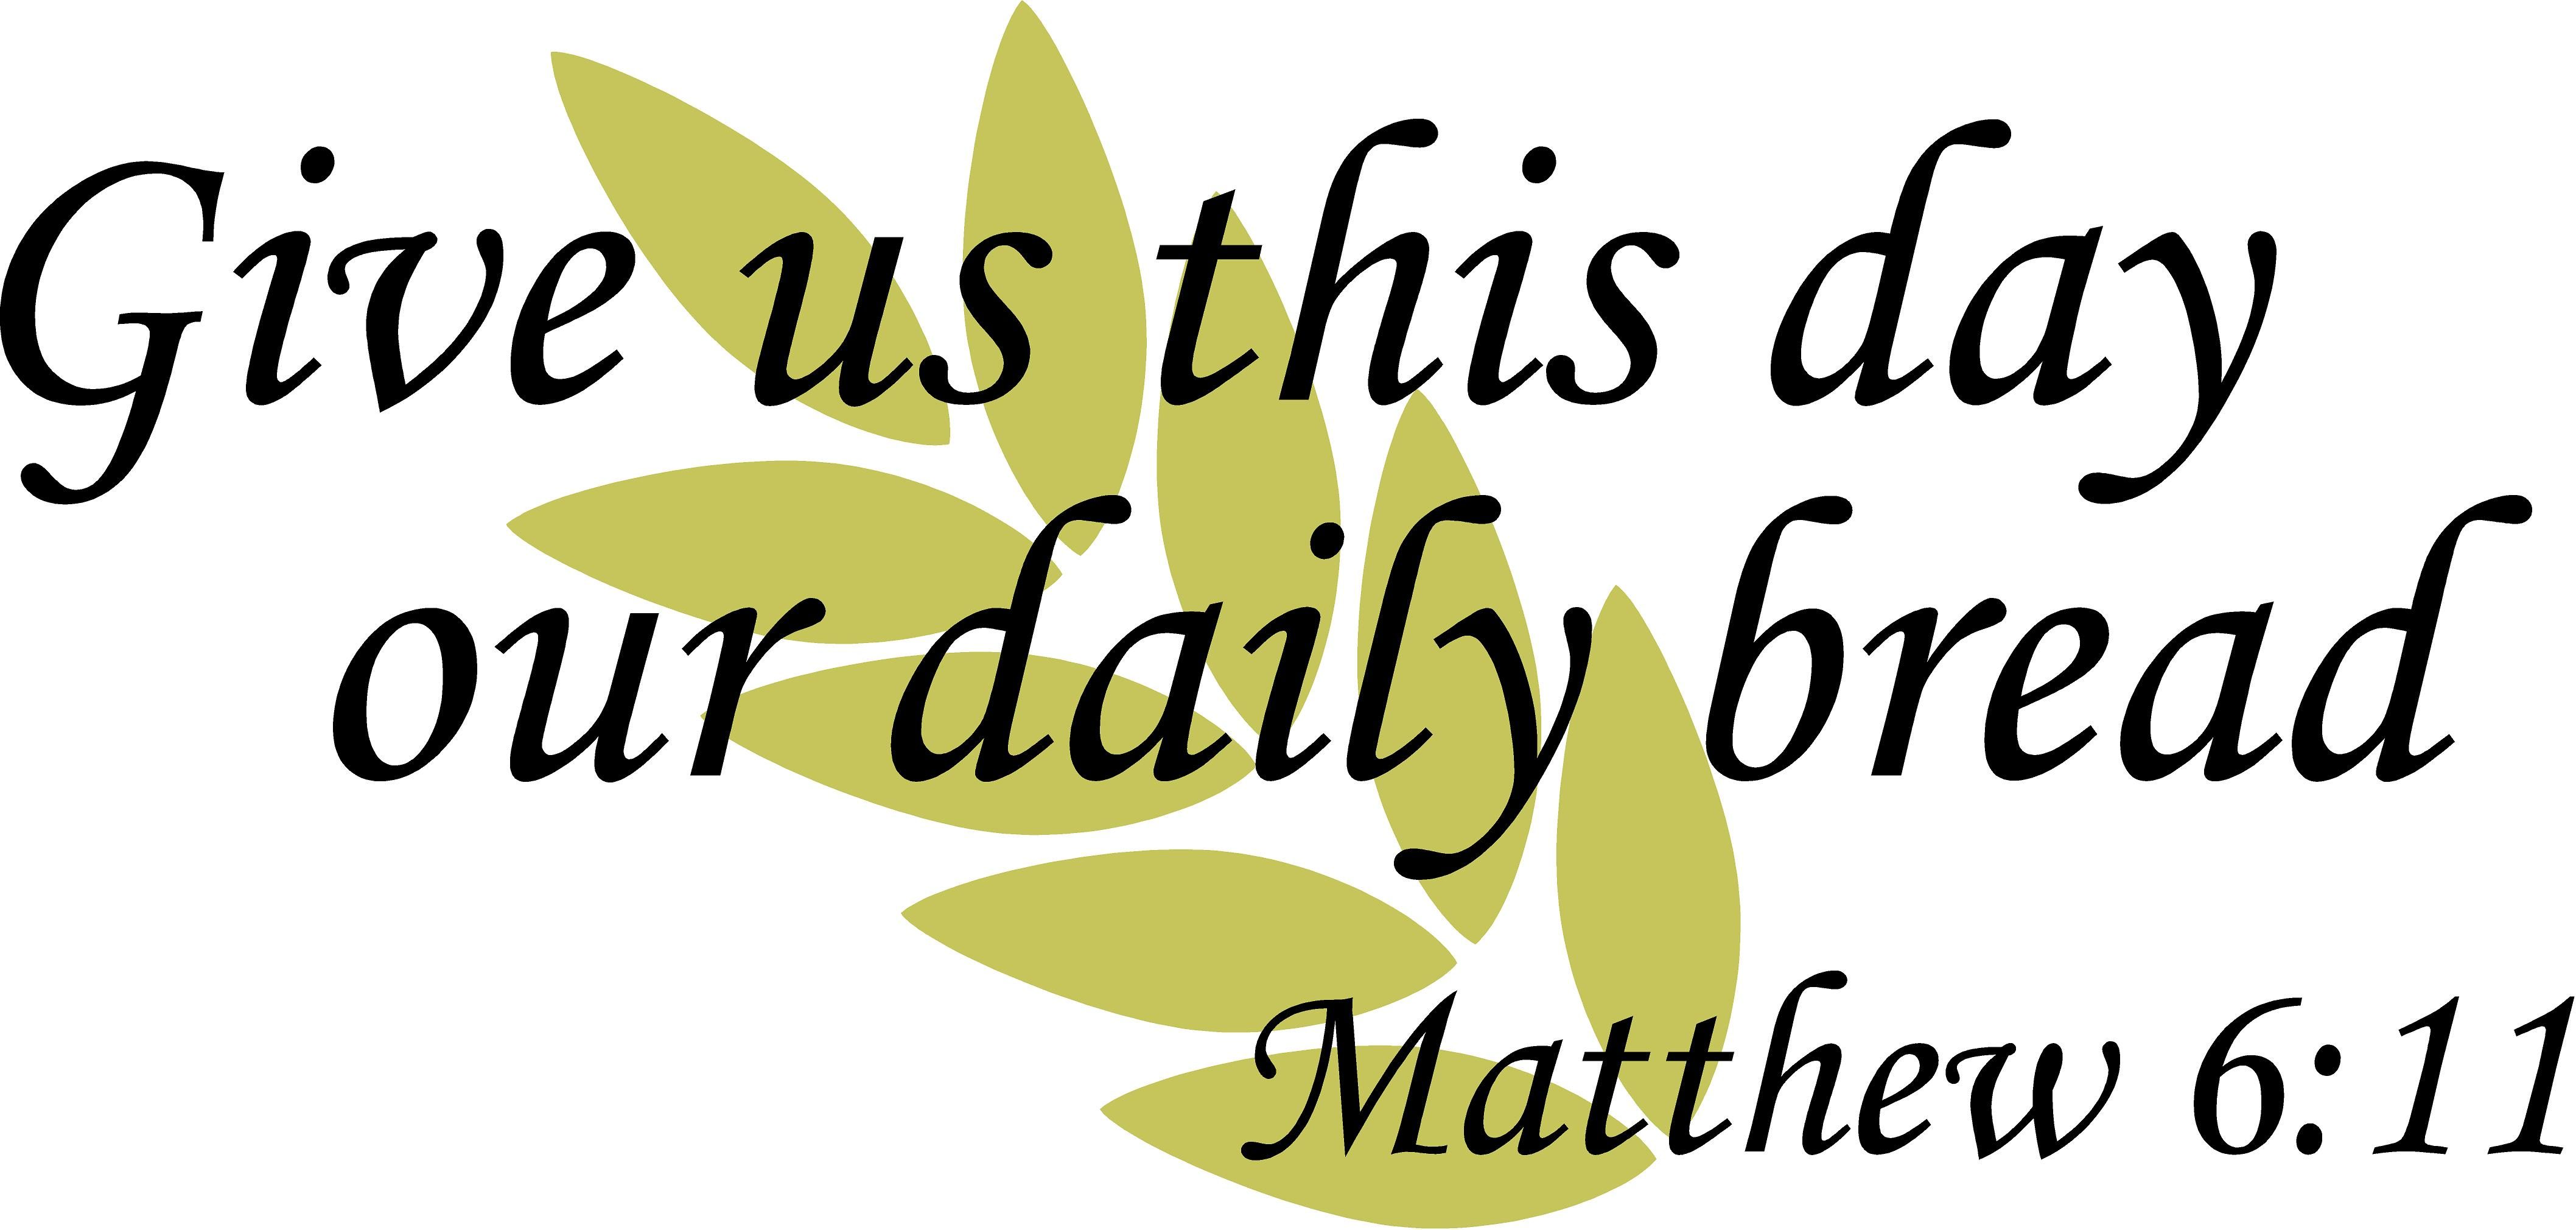 ... Give Us This Day Our Daily Bread. 🔍. Spiritual Quotes